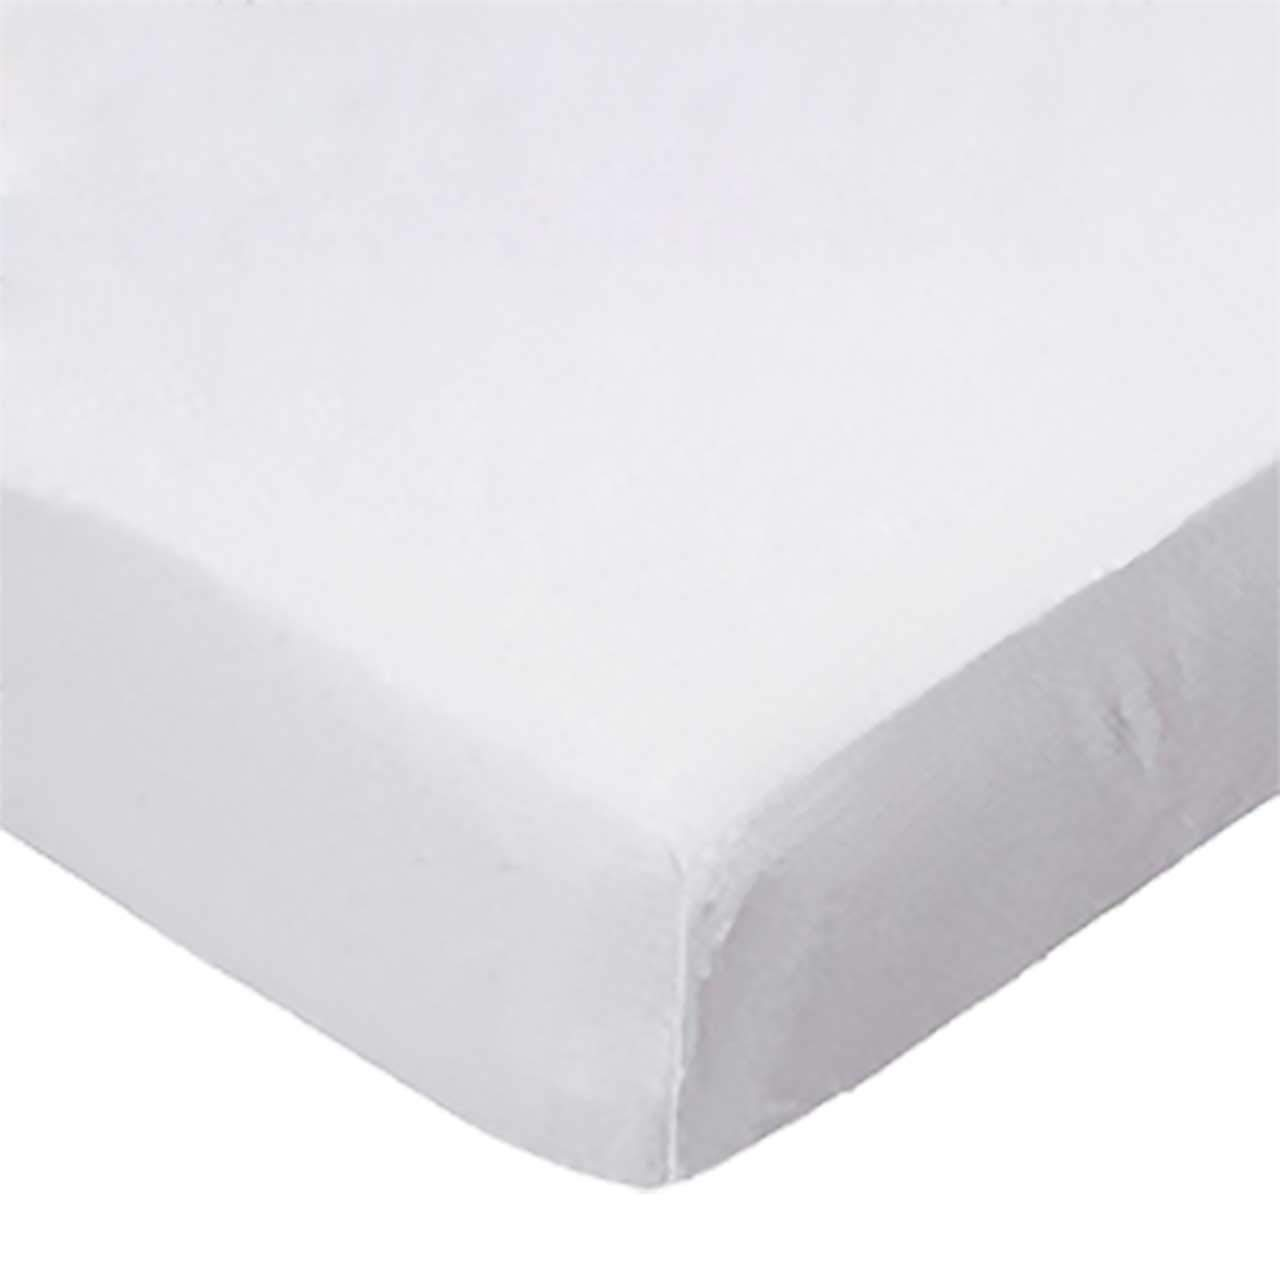 SheetWorld Fitted Portable / Mini Crib Sheet - Solid White Jersey Knit - Made In USA